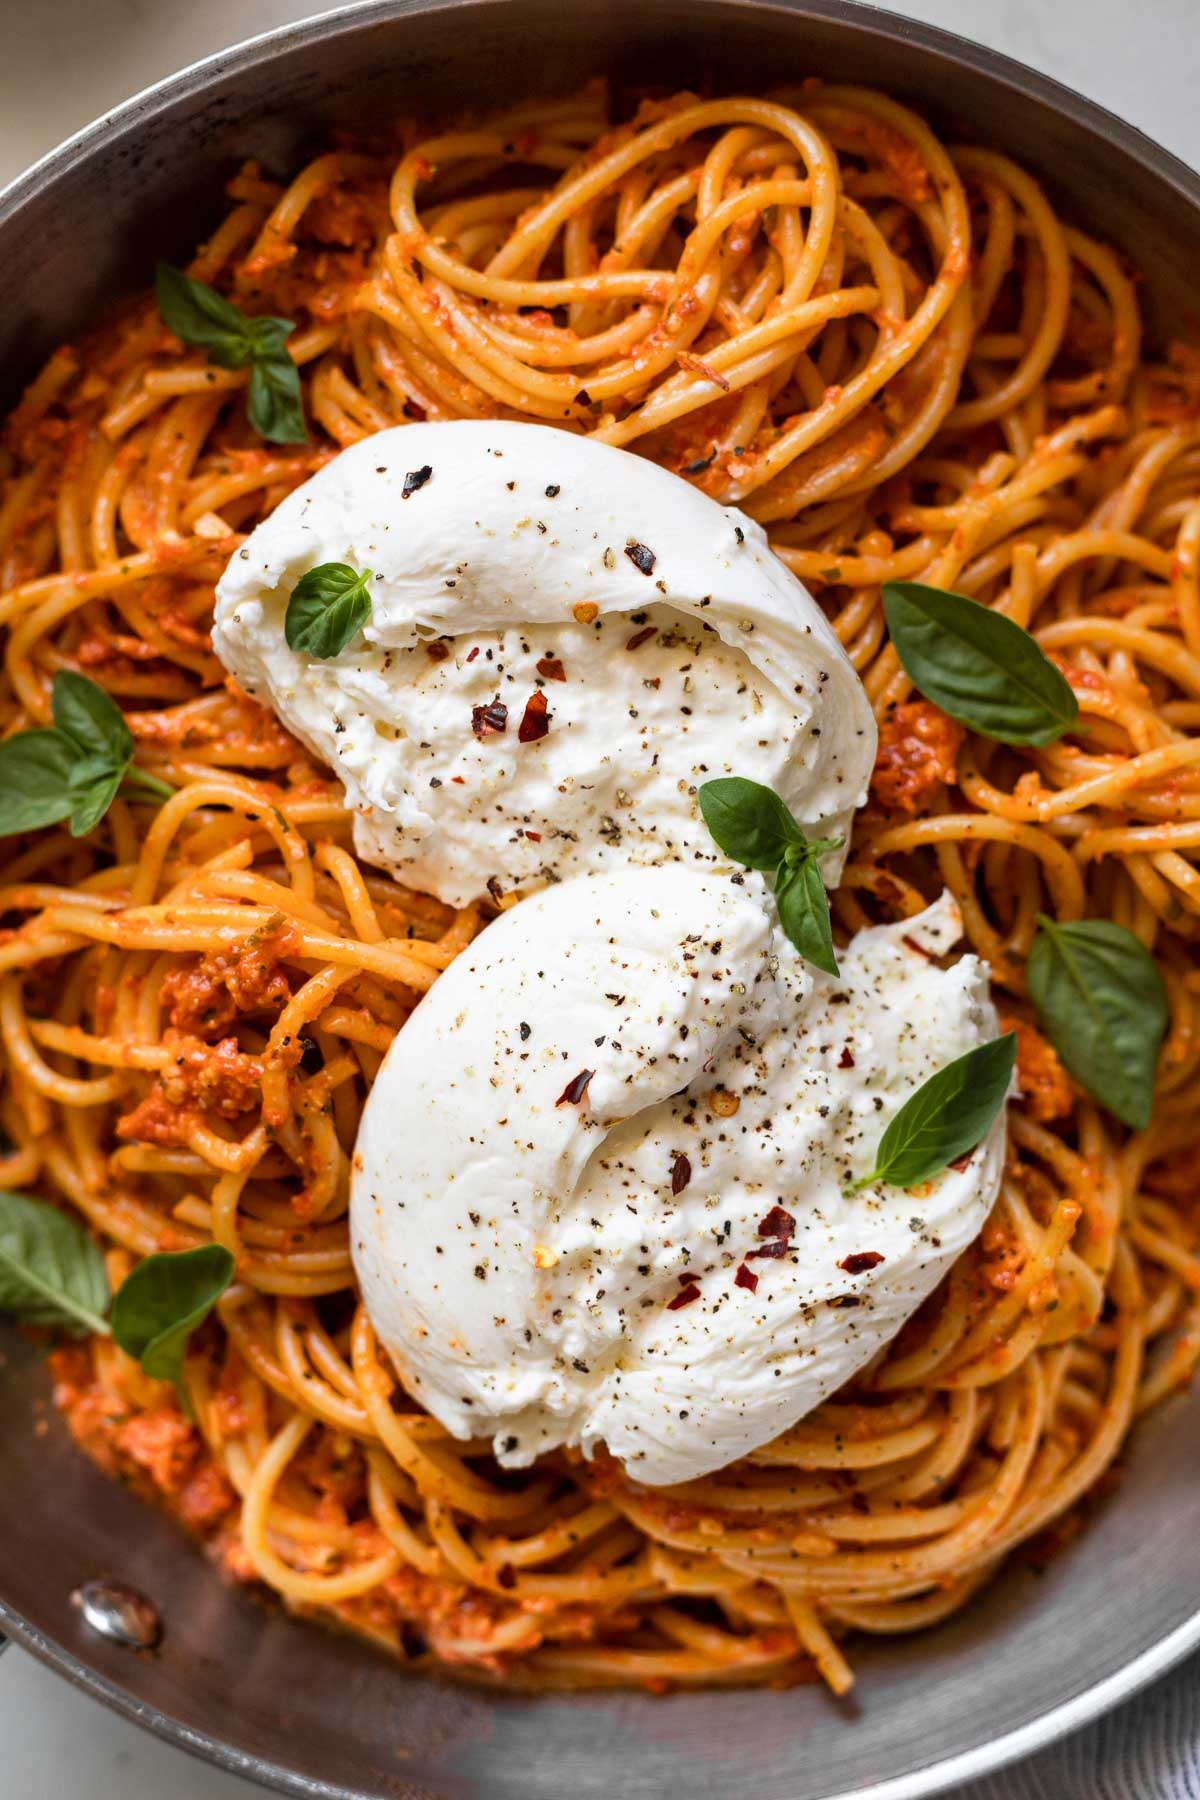 Burrata on top of pasta in a skillet.